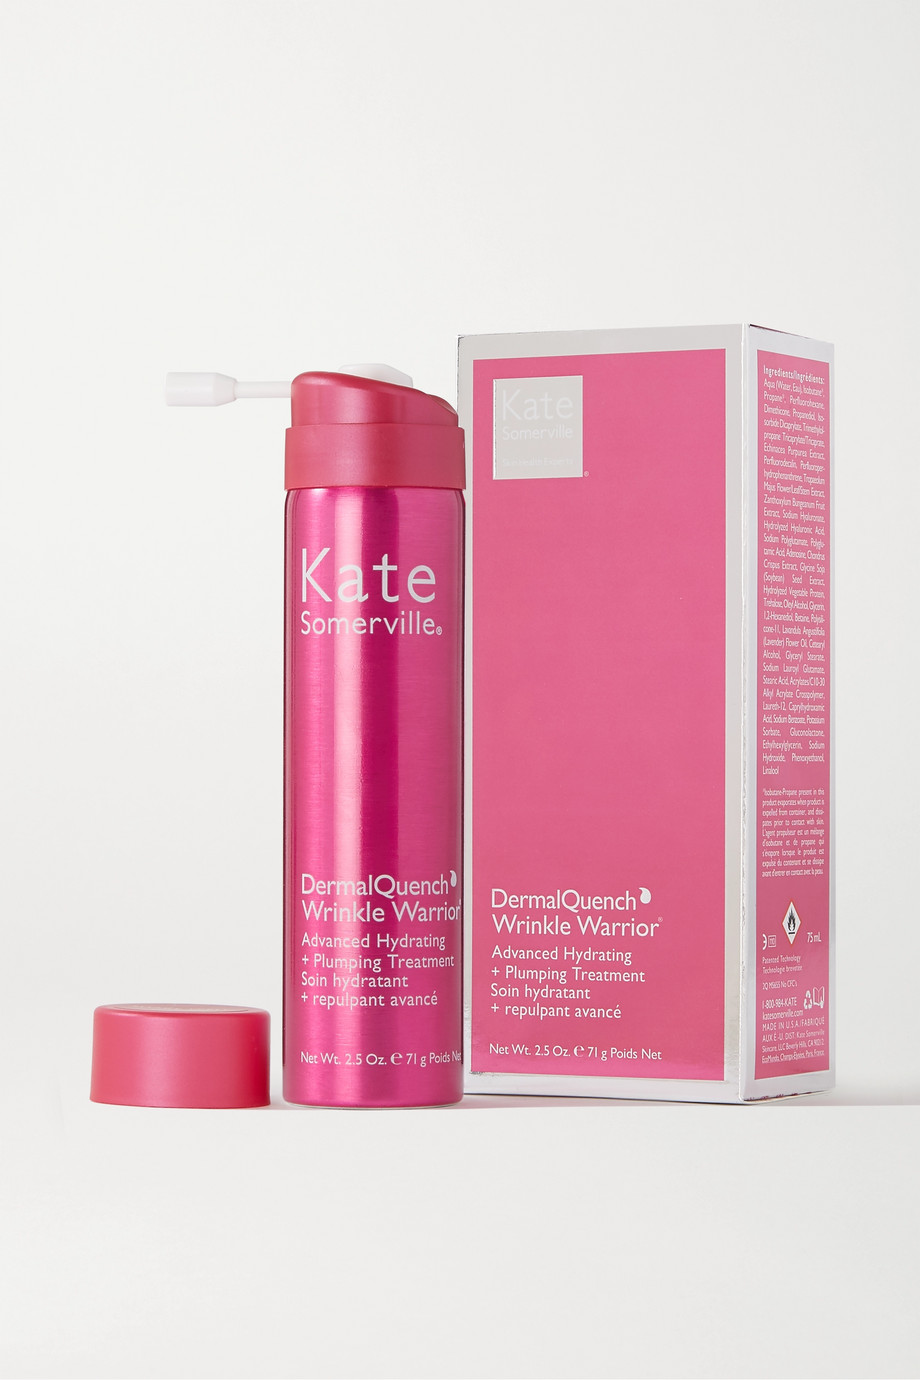 Kate Somerville DermalQuench Wrinkle Warrior Advanced Hydrating + Plumping Treatment, 71g